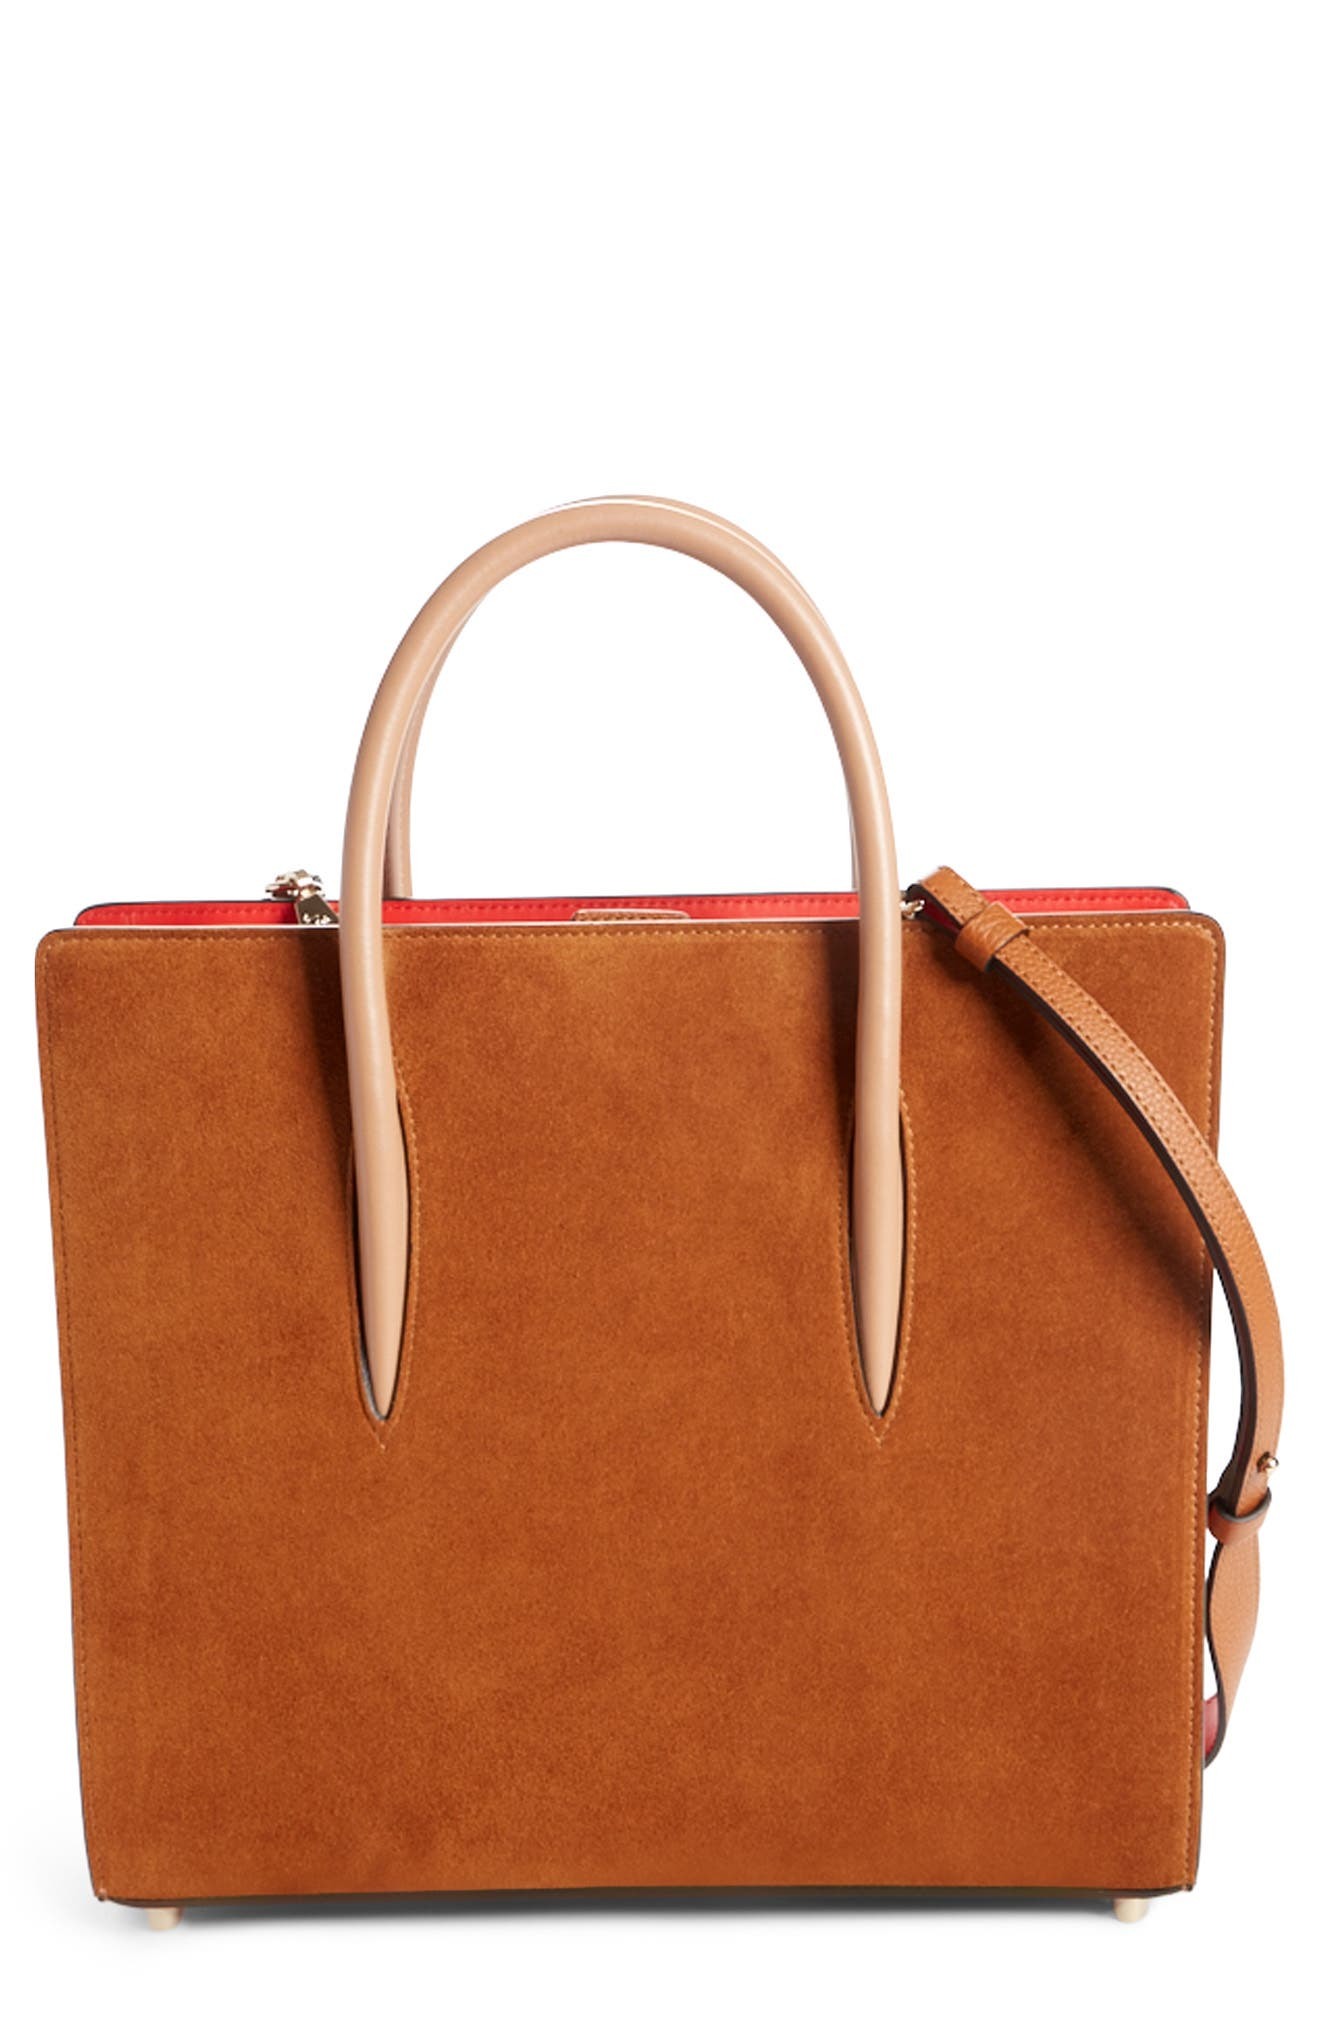 Medium Paloma Loubiwoodstock Suede & Leather Tote,                             Main thumbnail 1, color,                             247